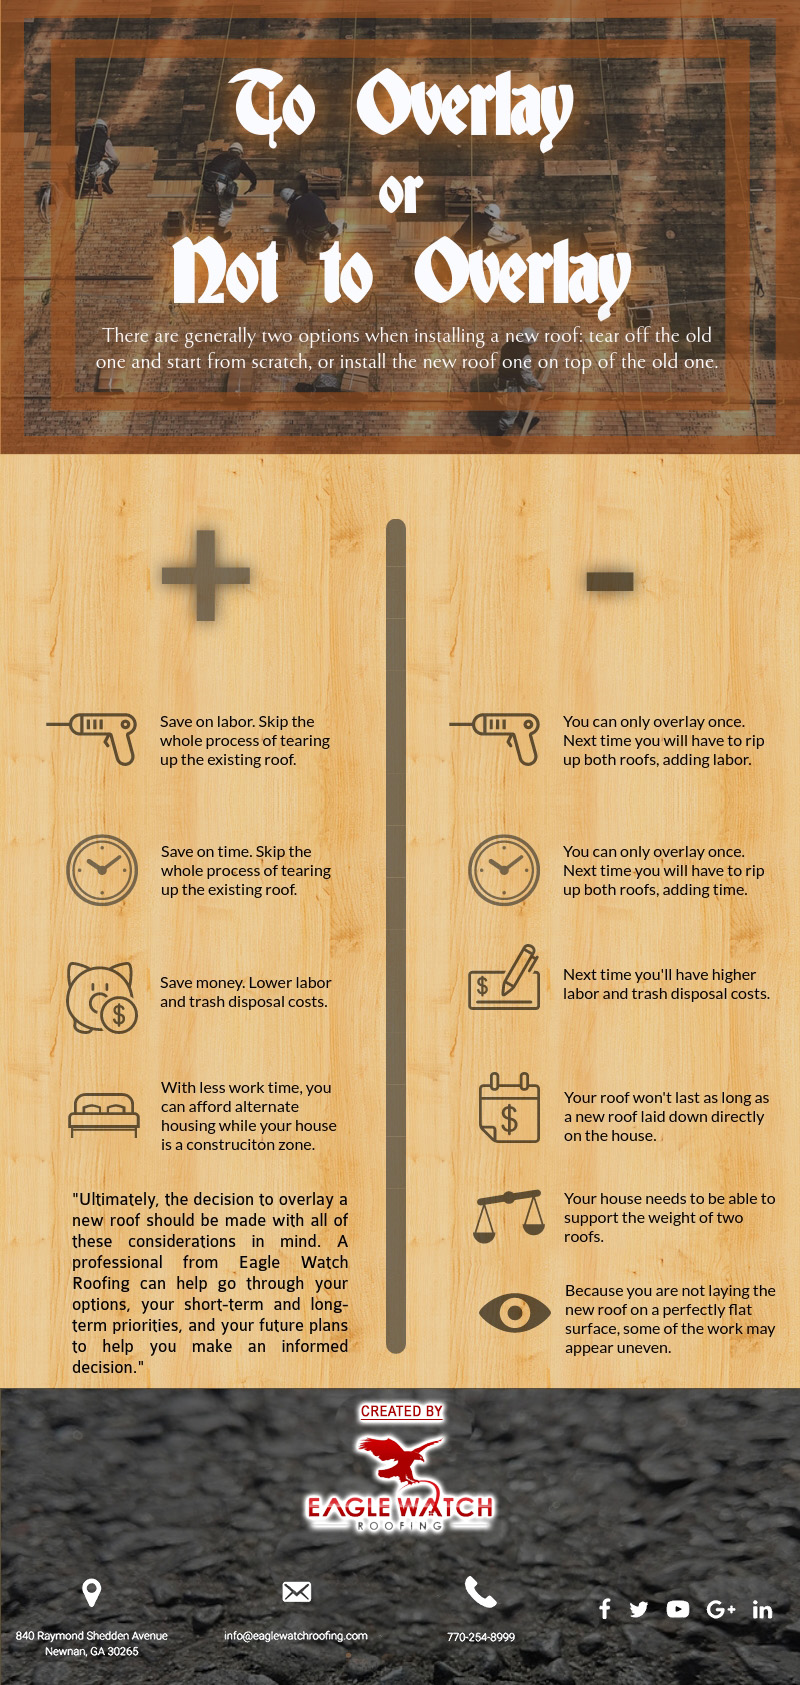 Does It Make Sense to Overlay a New Roof [infographic]